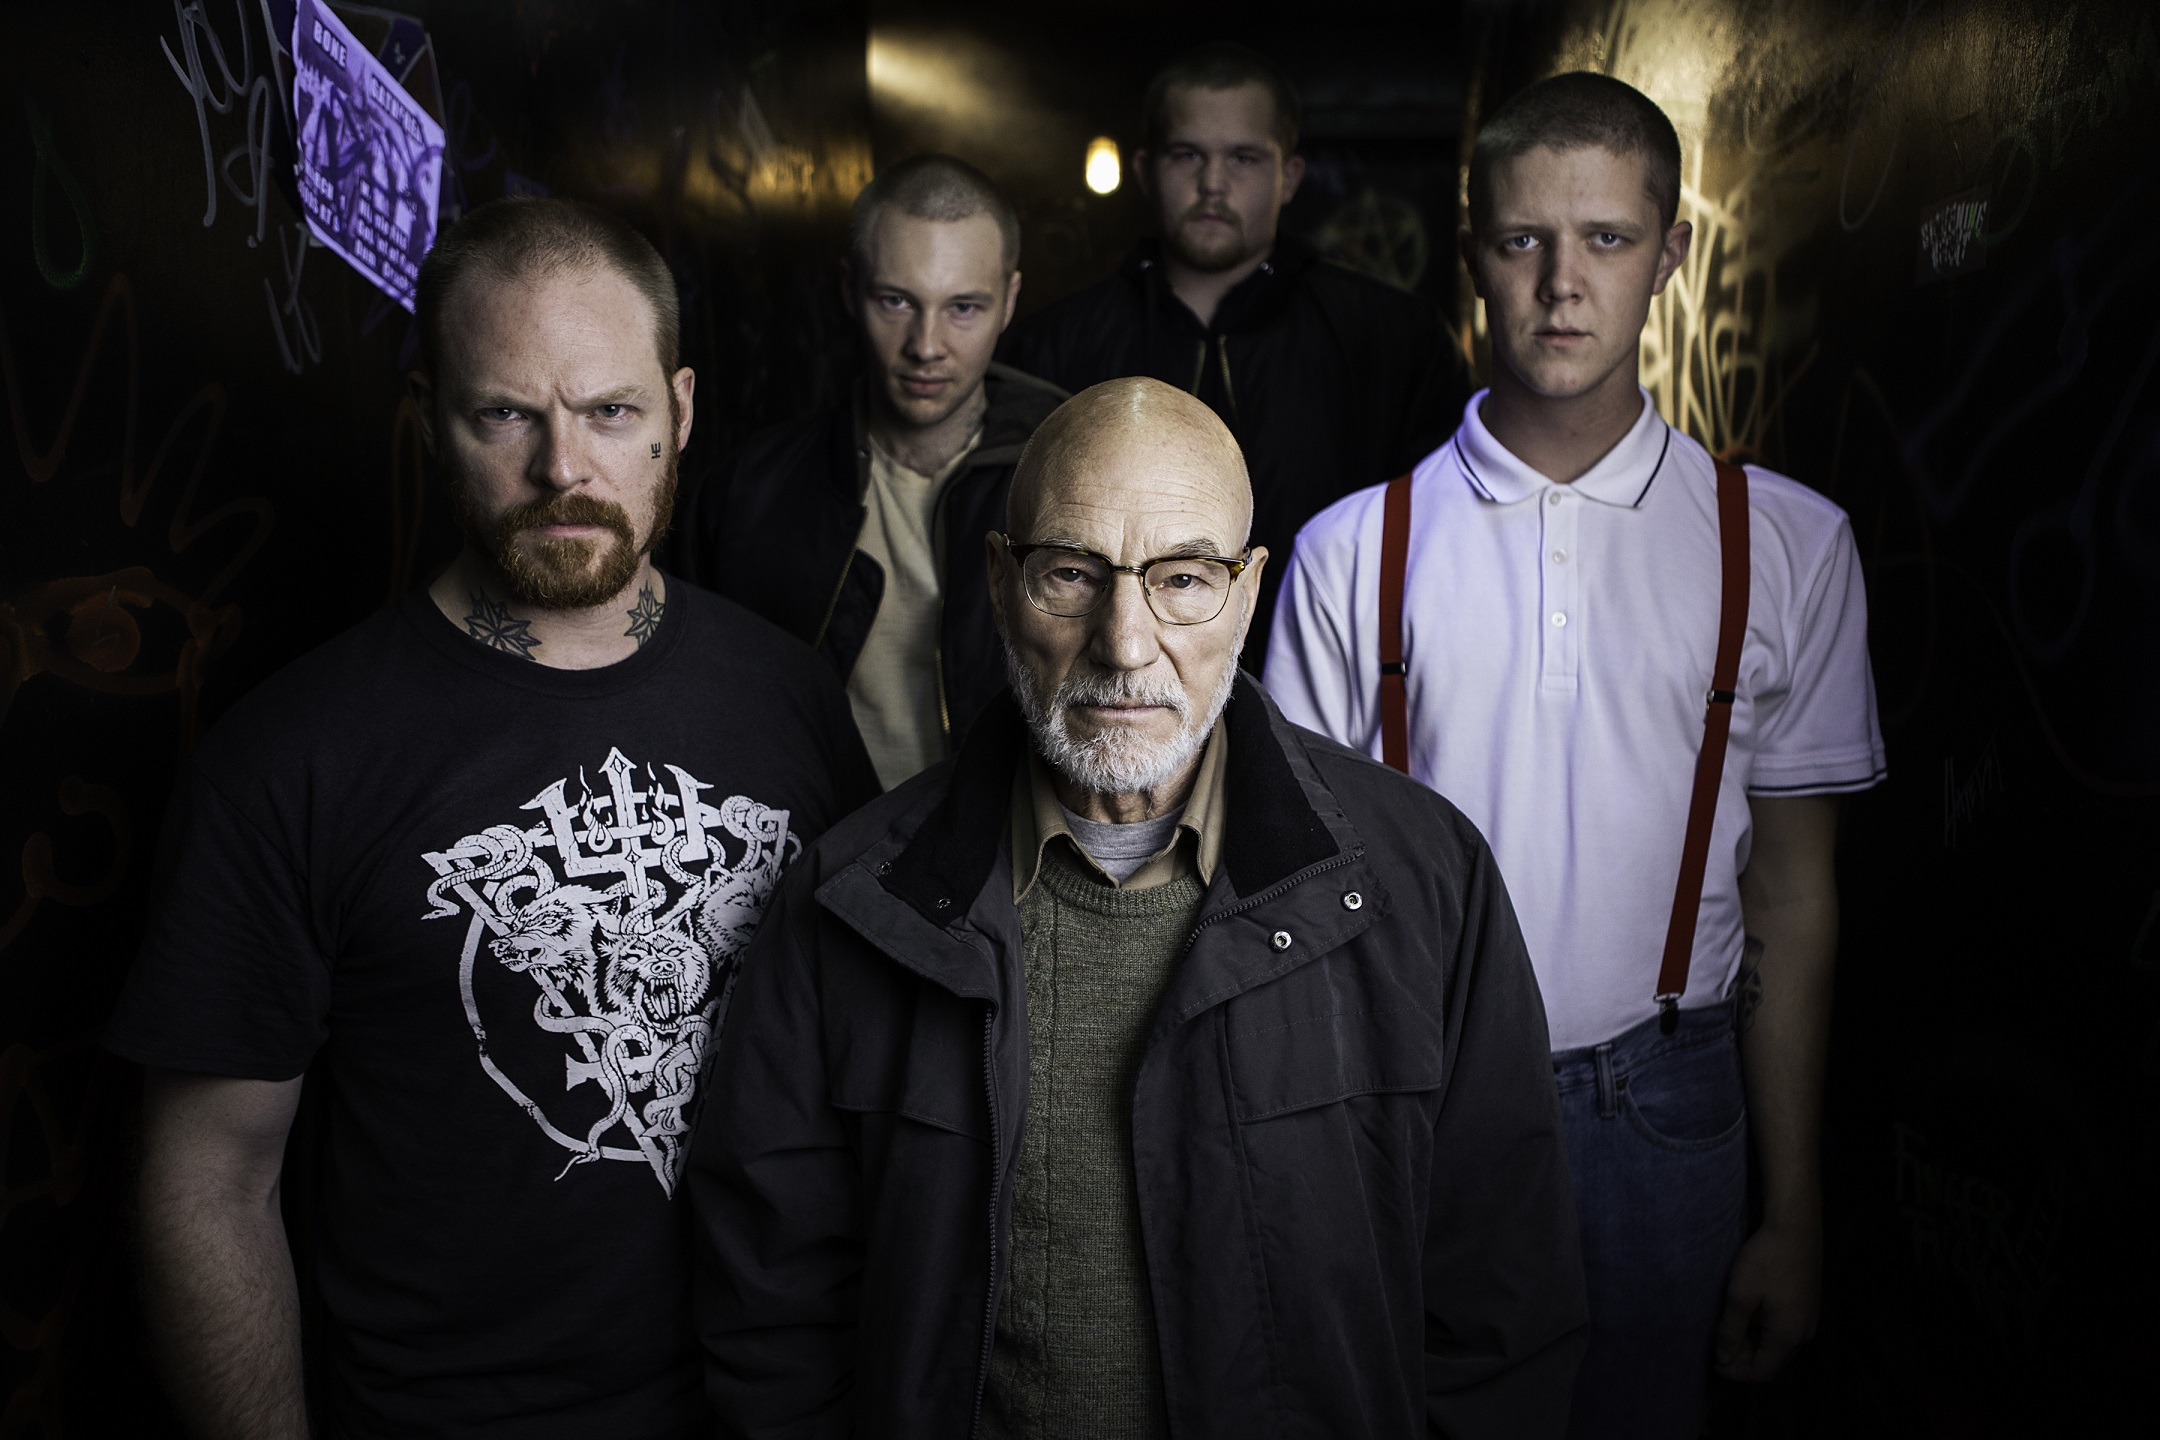 Green Room is the film equivalent of licking a public restroom